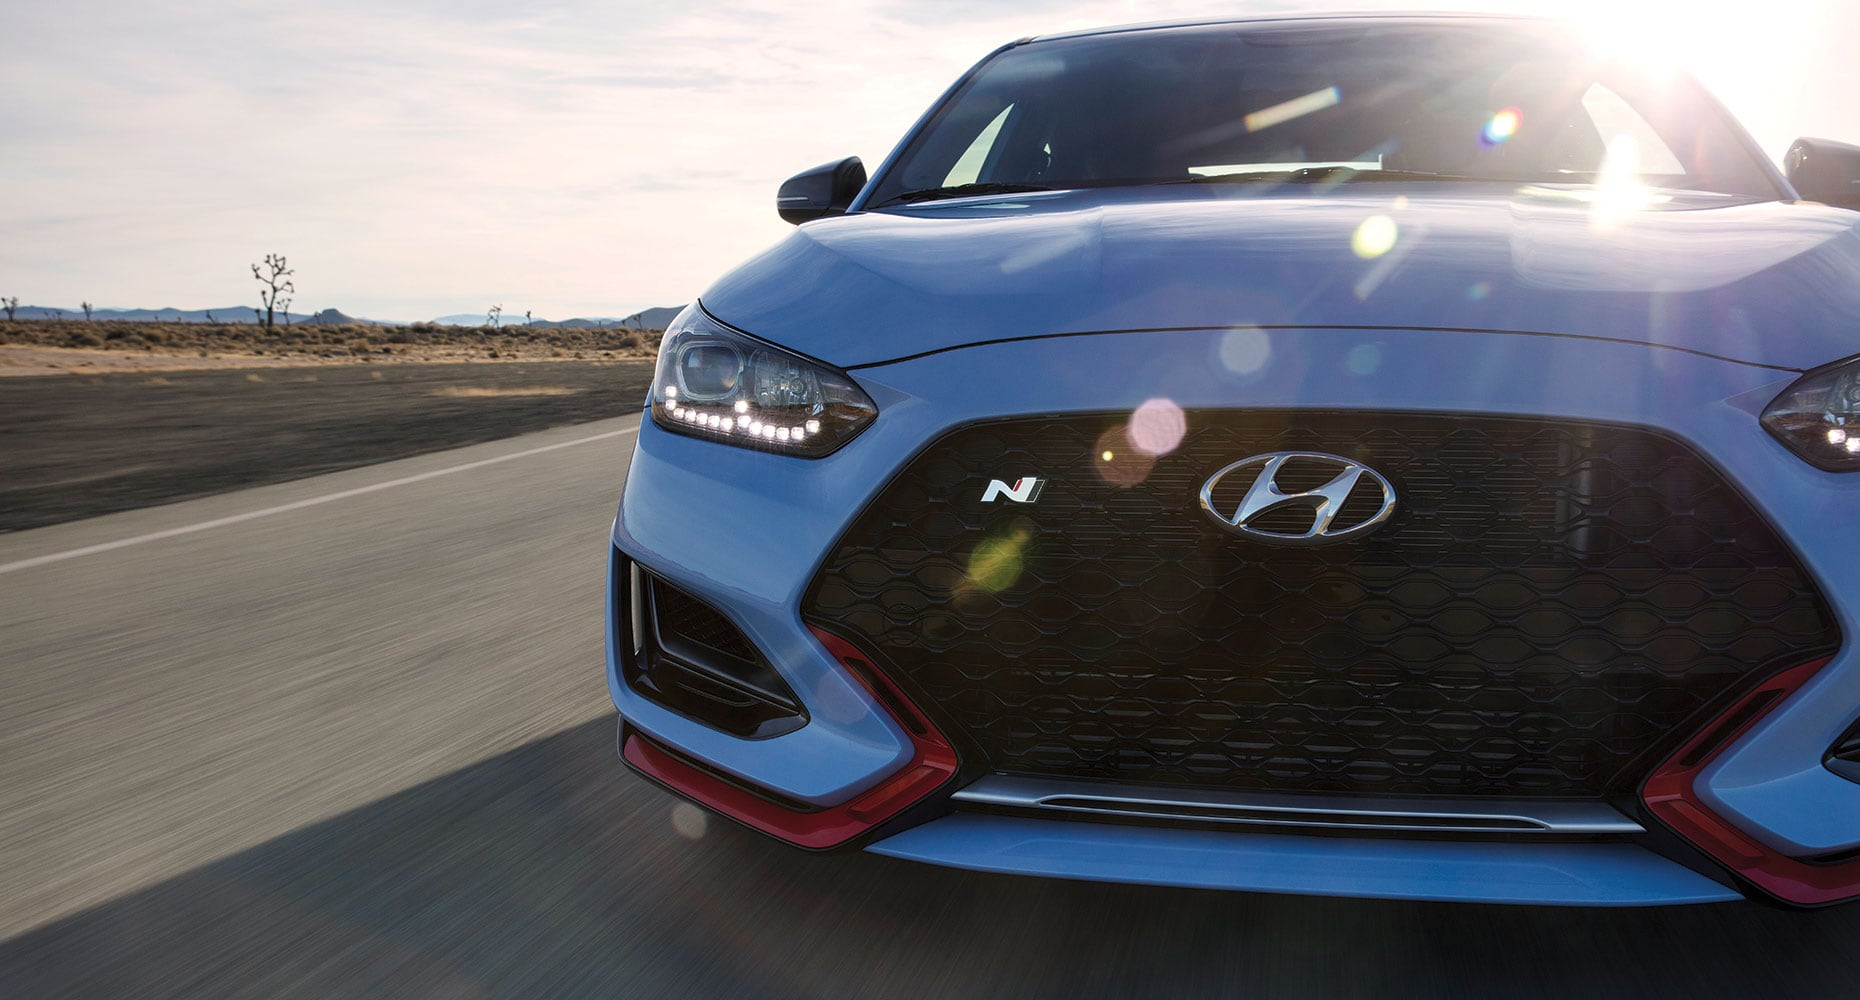 Find the 2020 Velostar N at Pathway Hyundai Orleans ON